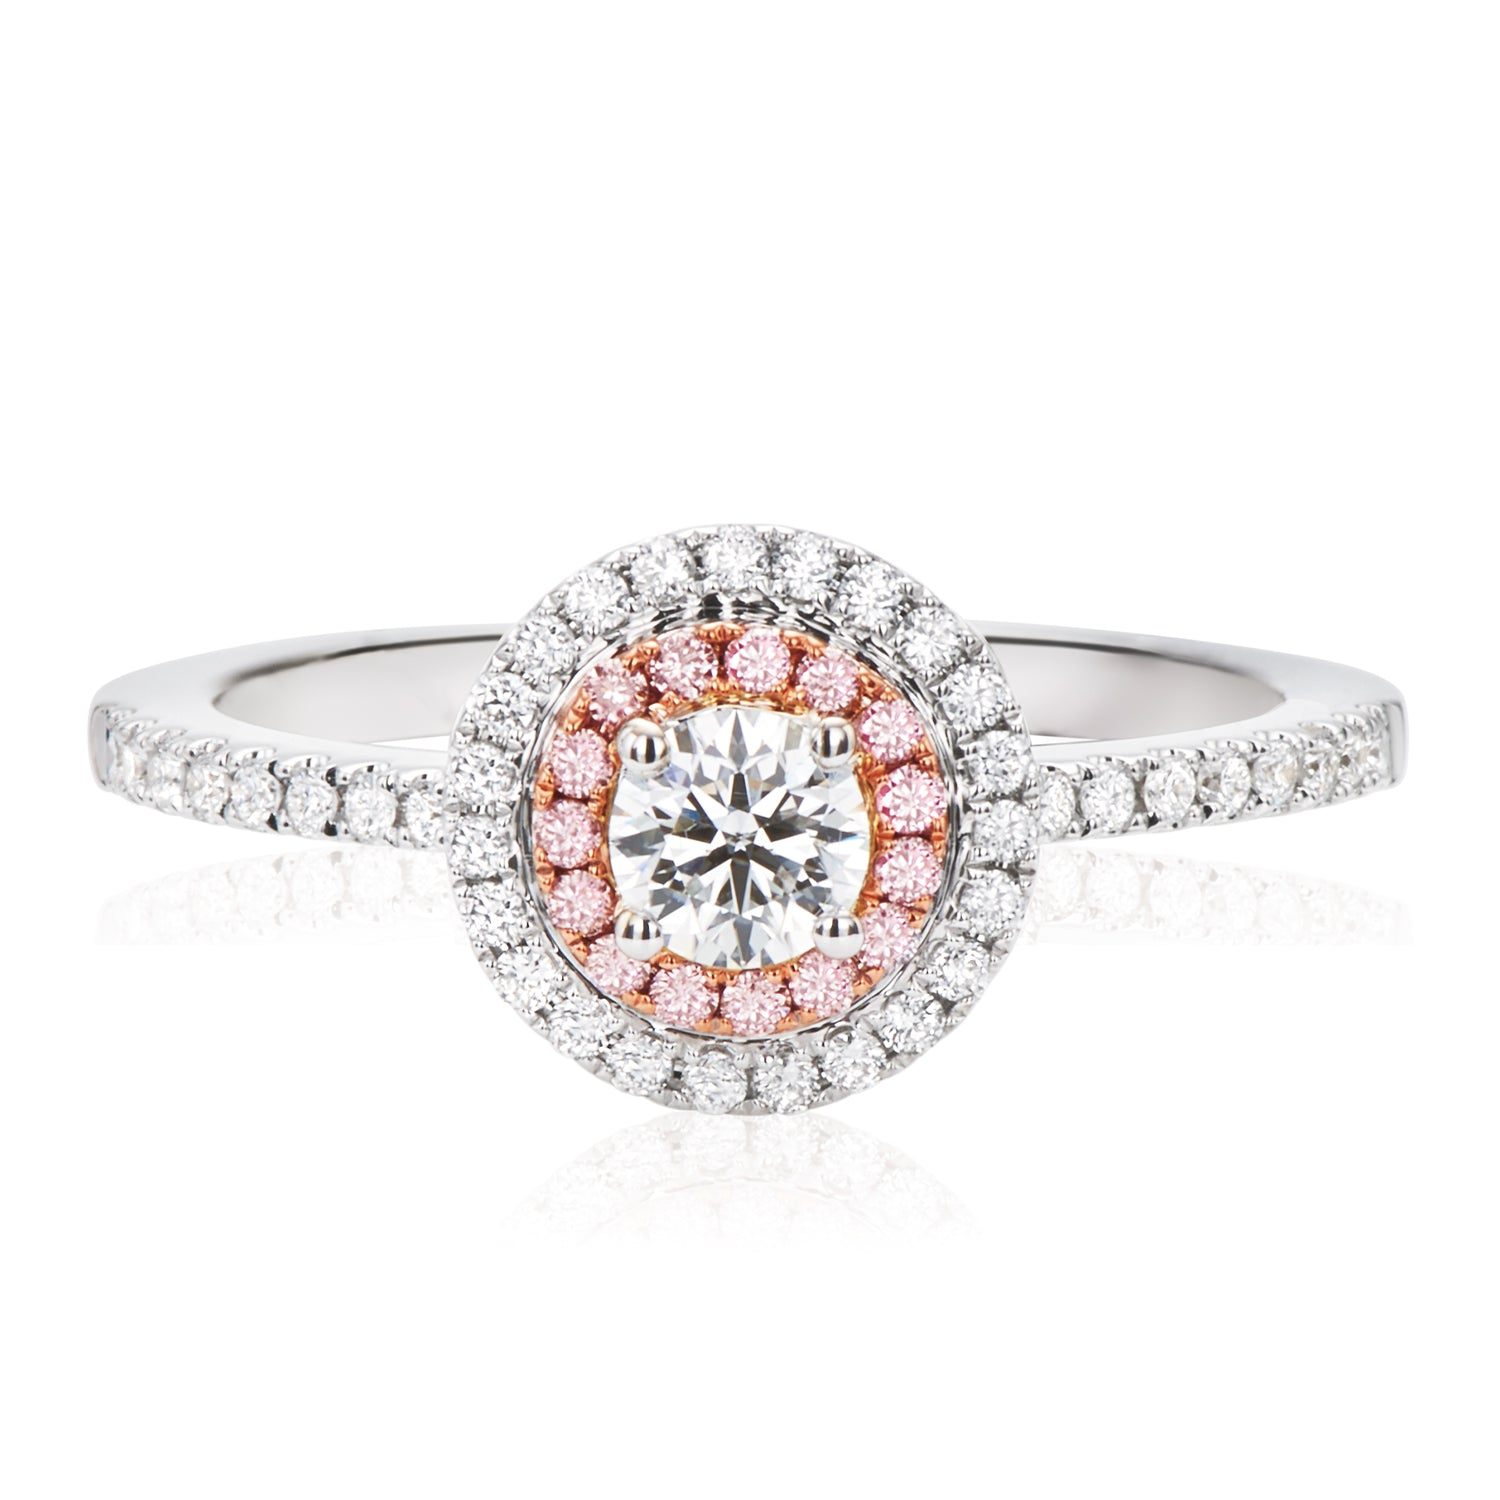 Rand 18ct Rose & White Gold Round Brilliant Cut with 0.58 CARAT tw of Diamonds